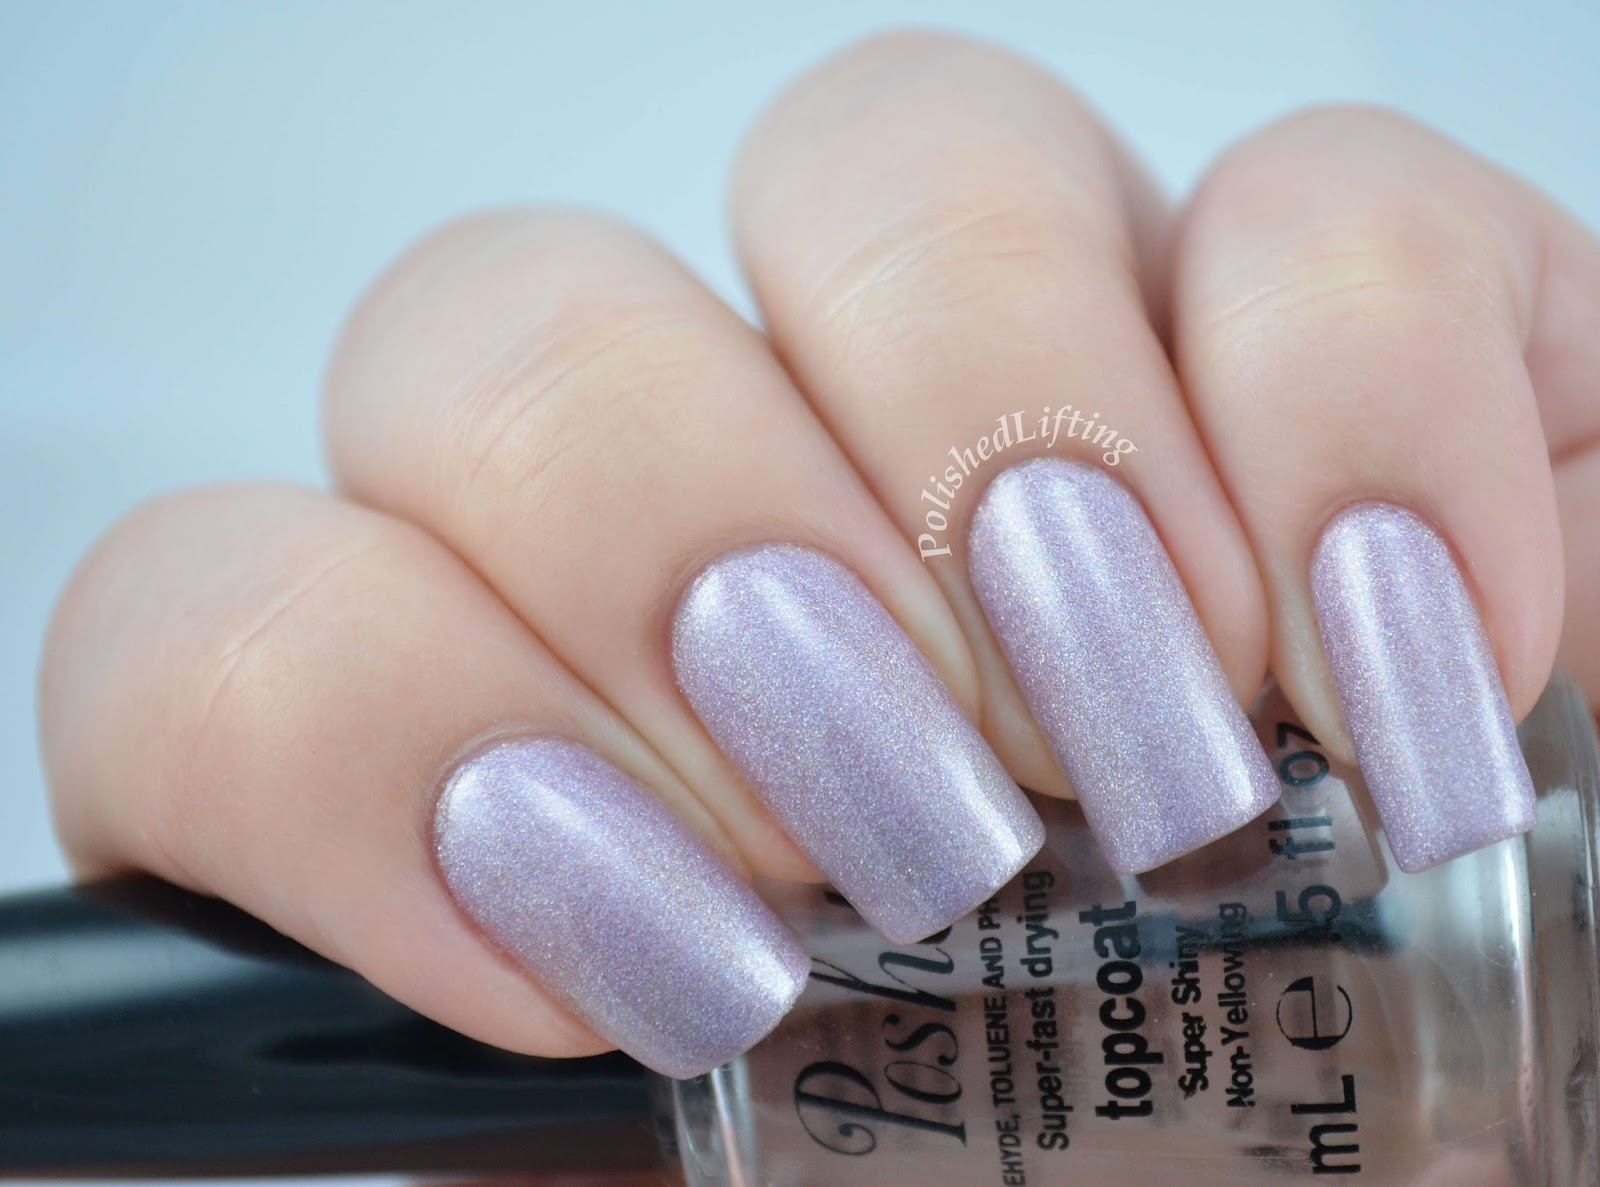 Reverie Nail Lacquer Orchid Summer 2014